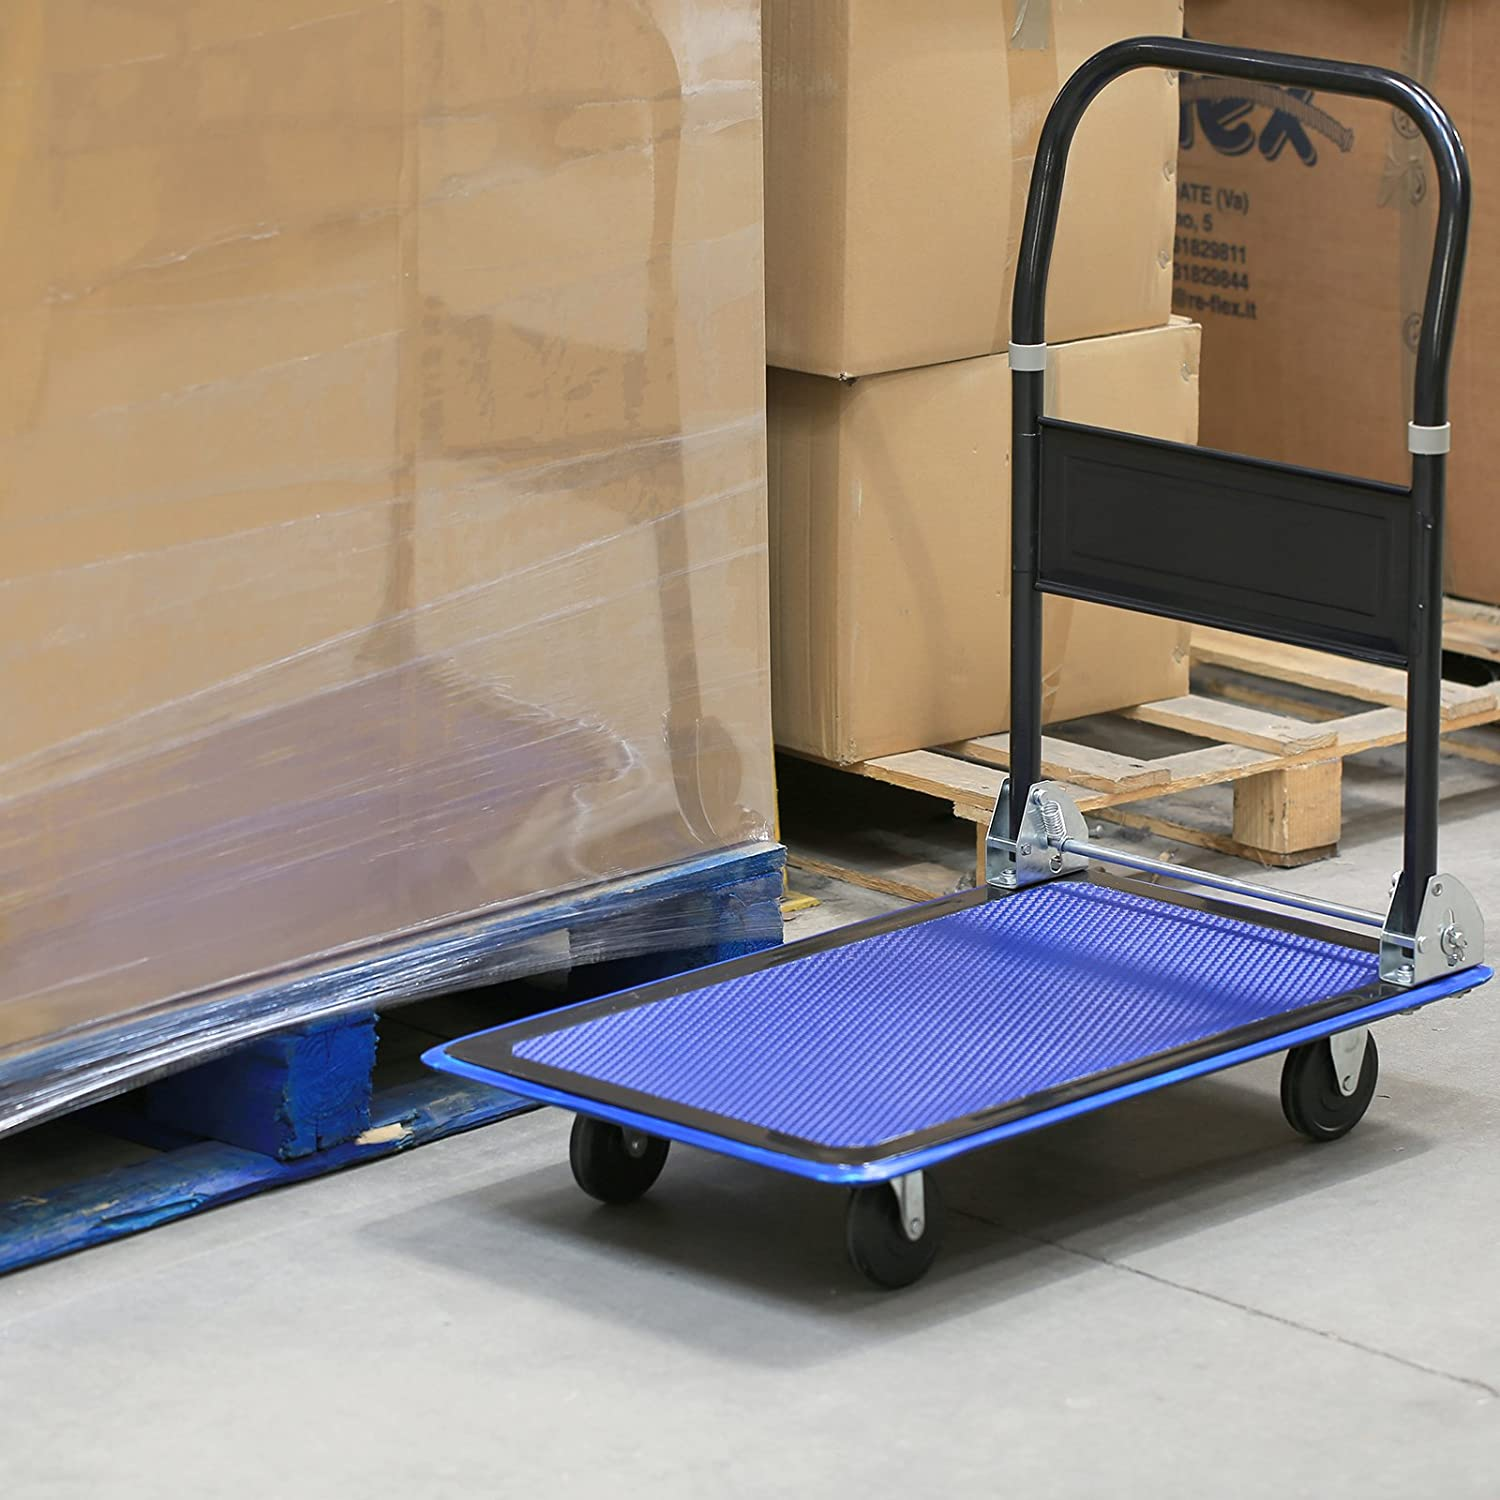 Qualtex Platform Hand Trolley Sack Truck Warehouse Office Garden Hand Trolley Cart Barrow 150kg